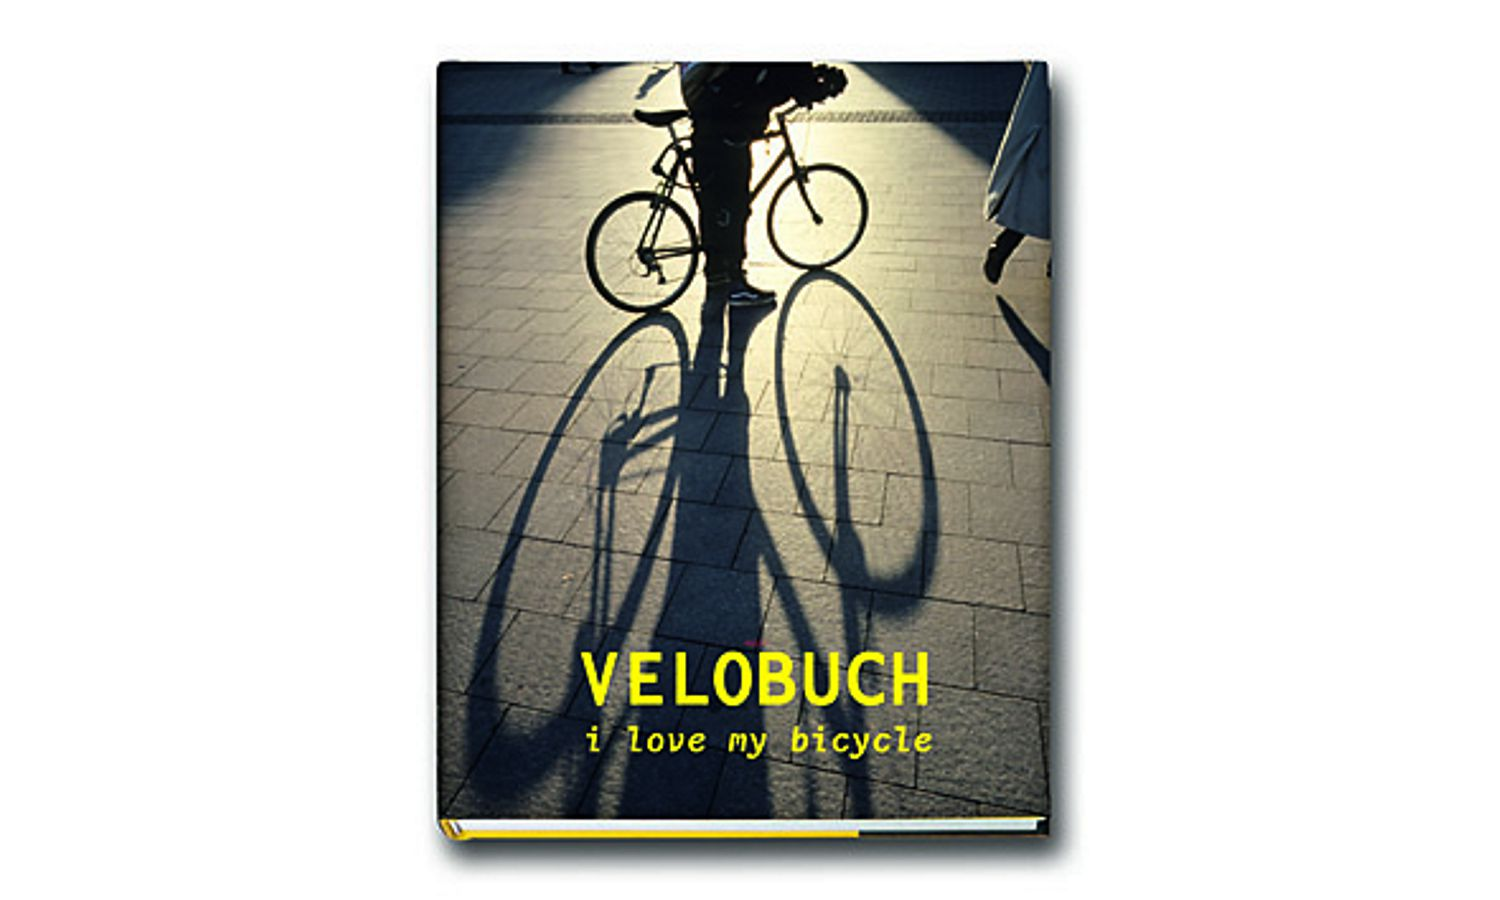 AURA VERLAG VELOBUCH i love my bicycle